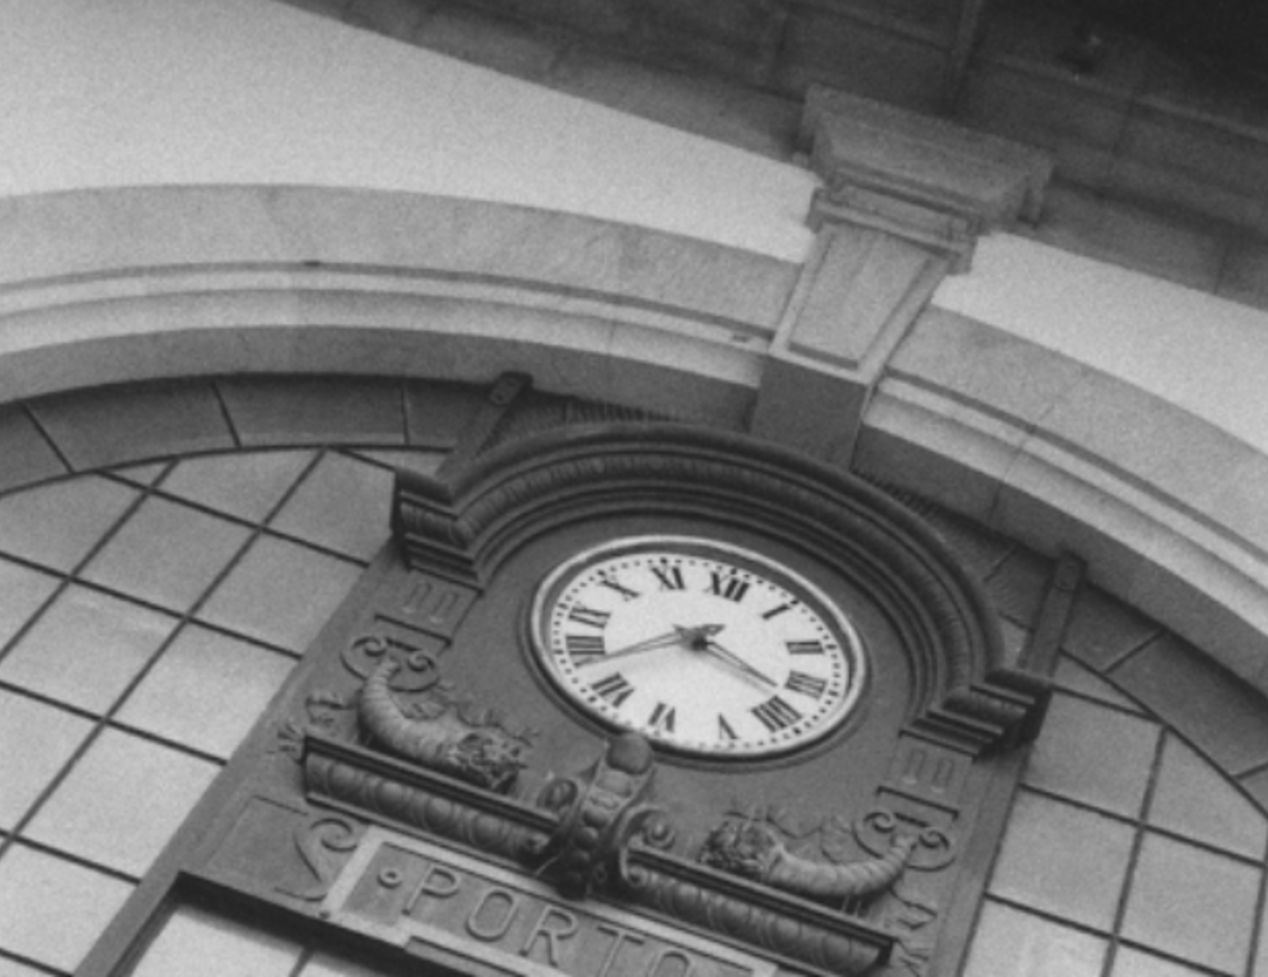 Watch in Station São Bento. Rollei 35  SE, 25mm.